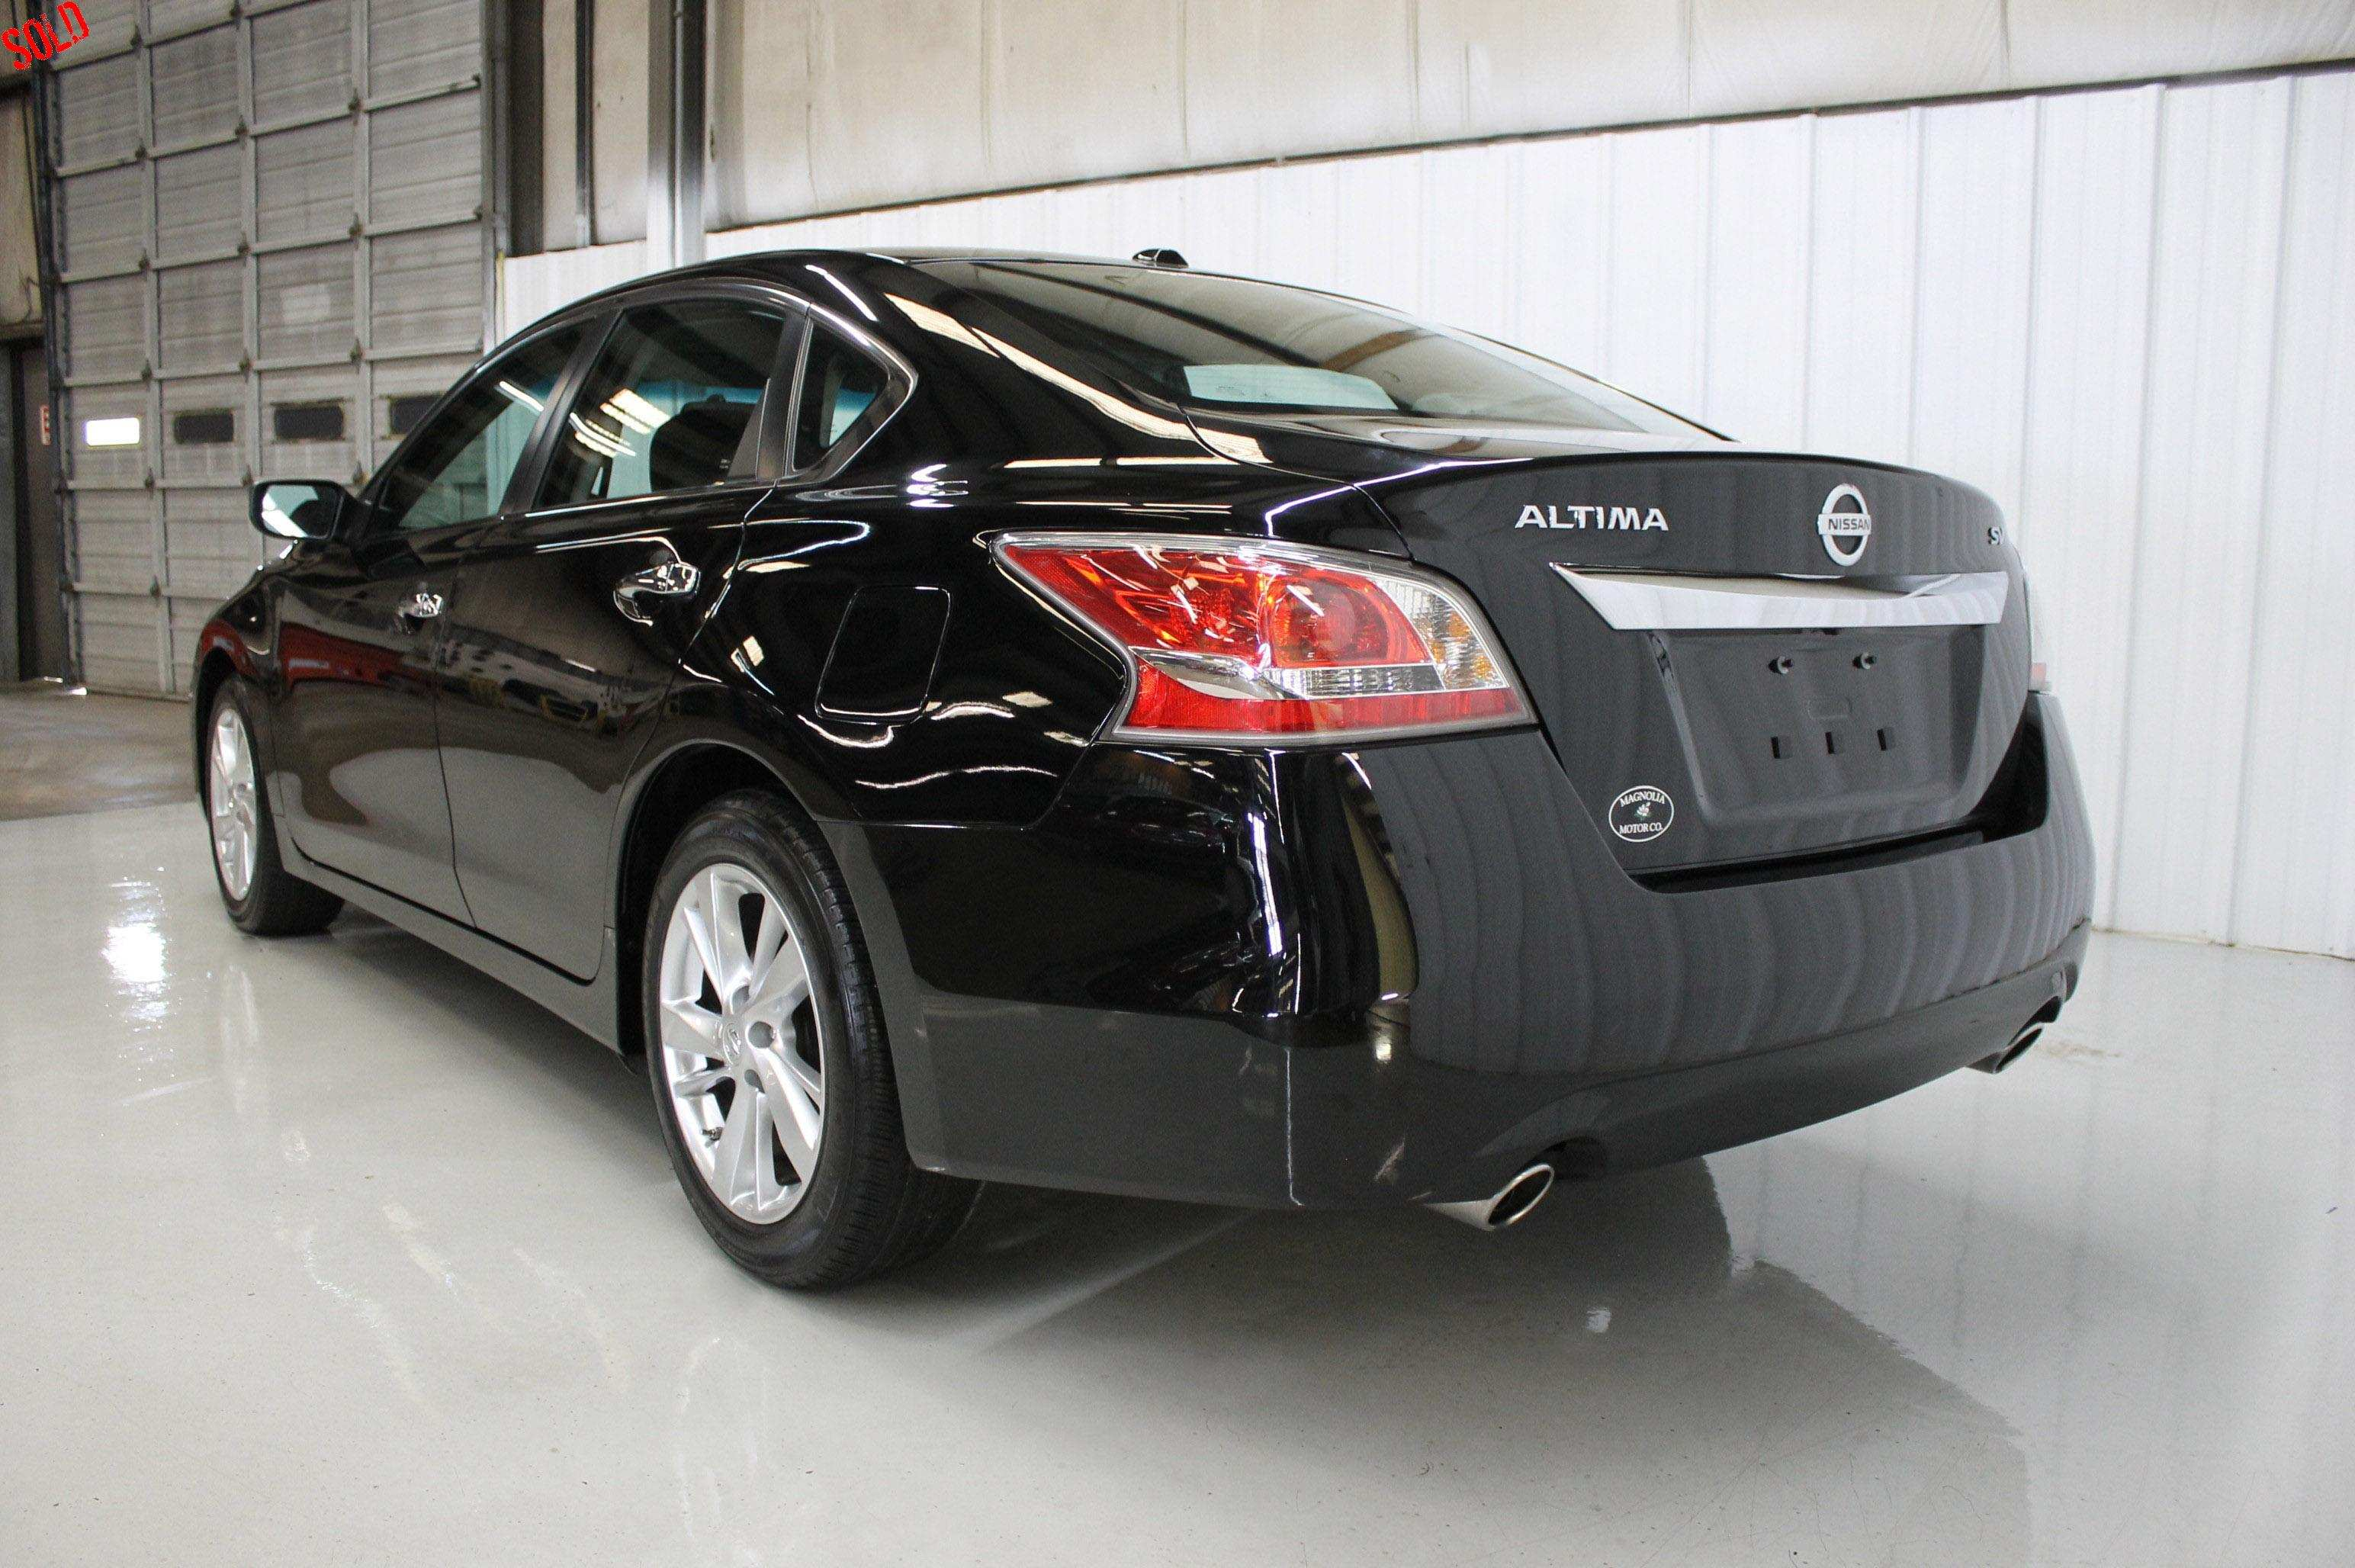 54 New 2015 Nissan Altima 2 5 Price